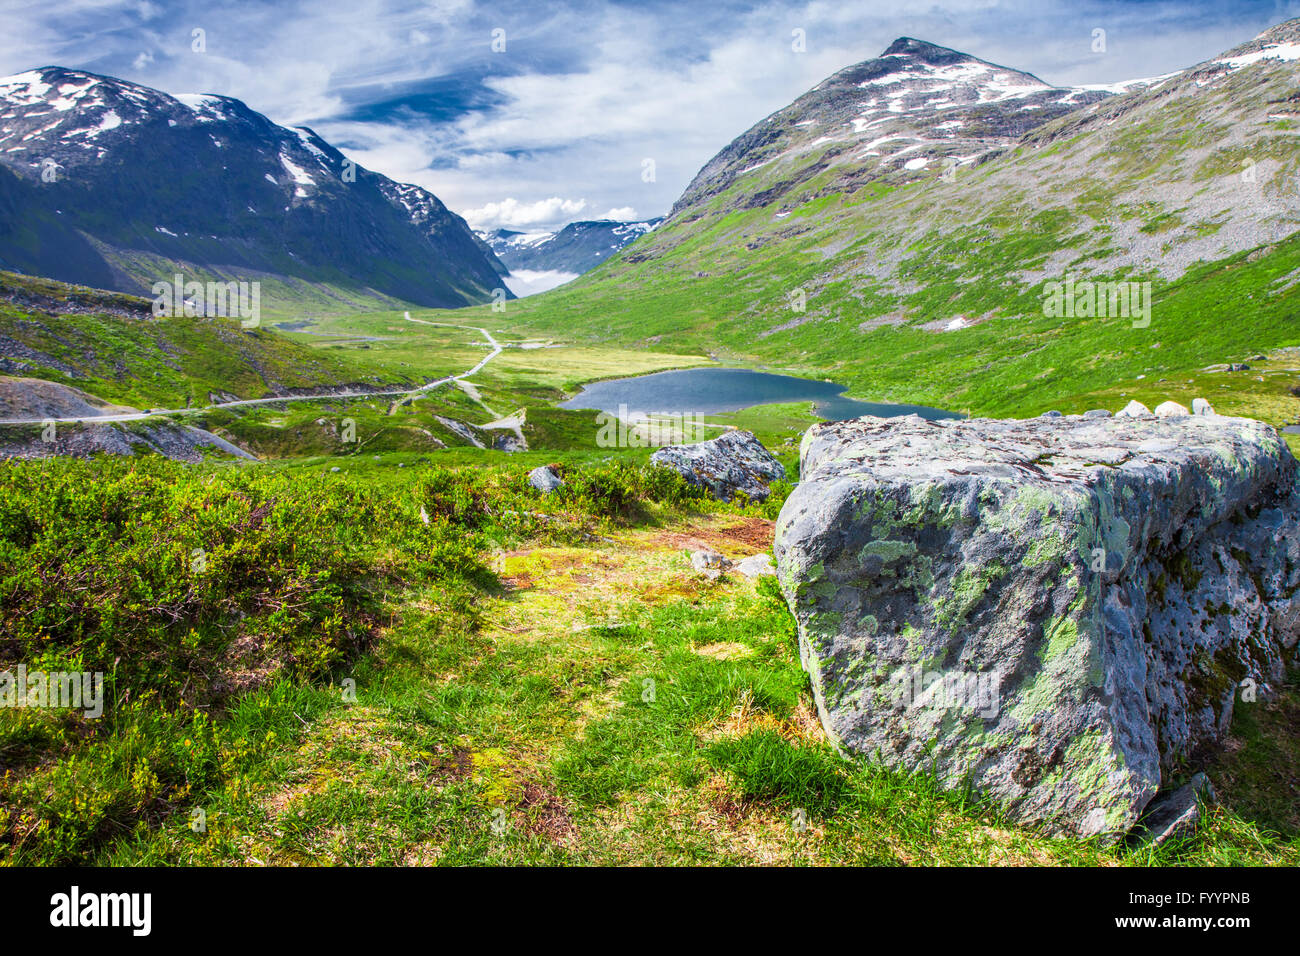 Trollstigen (Troll's road) Norway, Europe - Stock Image